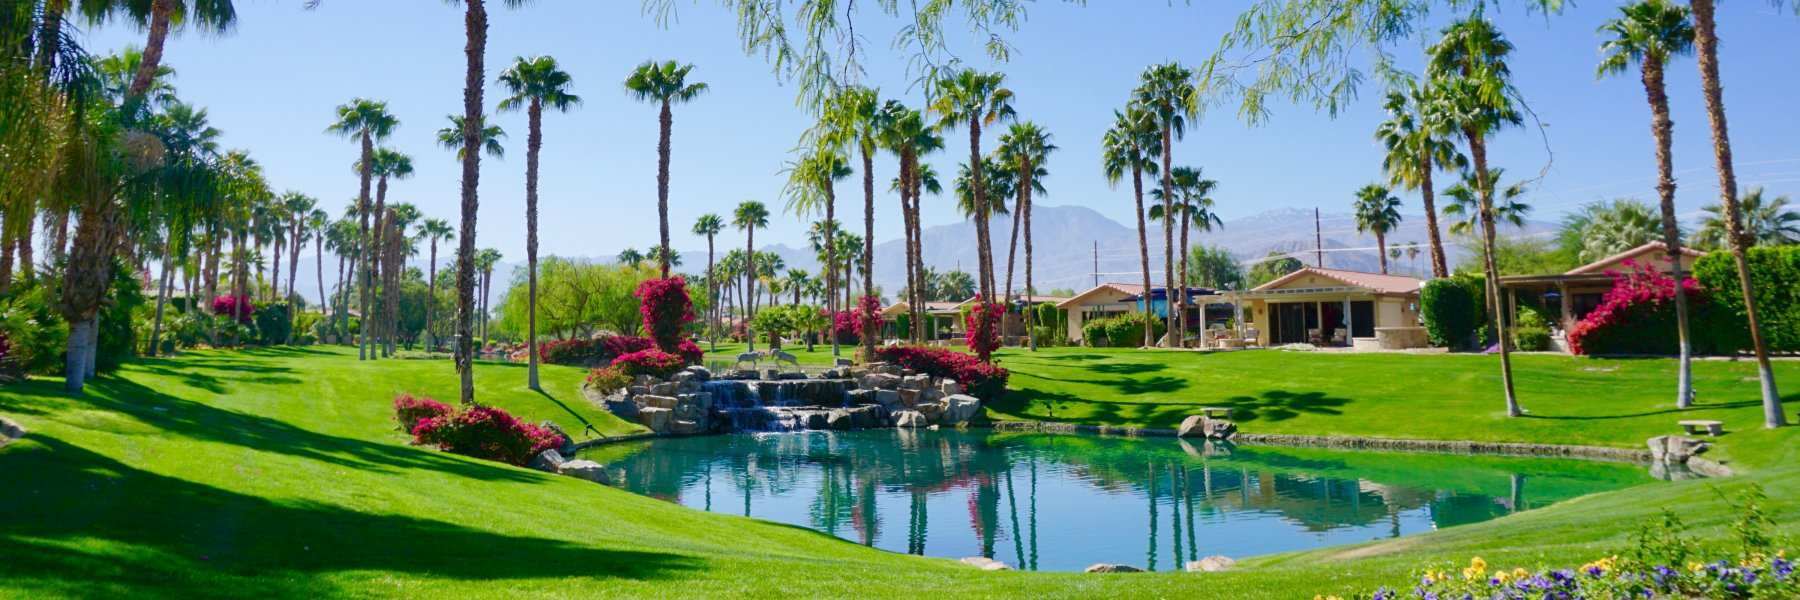 Desert Shores is a community of homes in Indio California